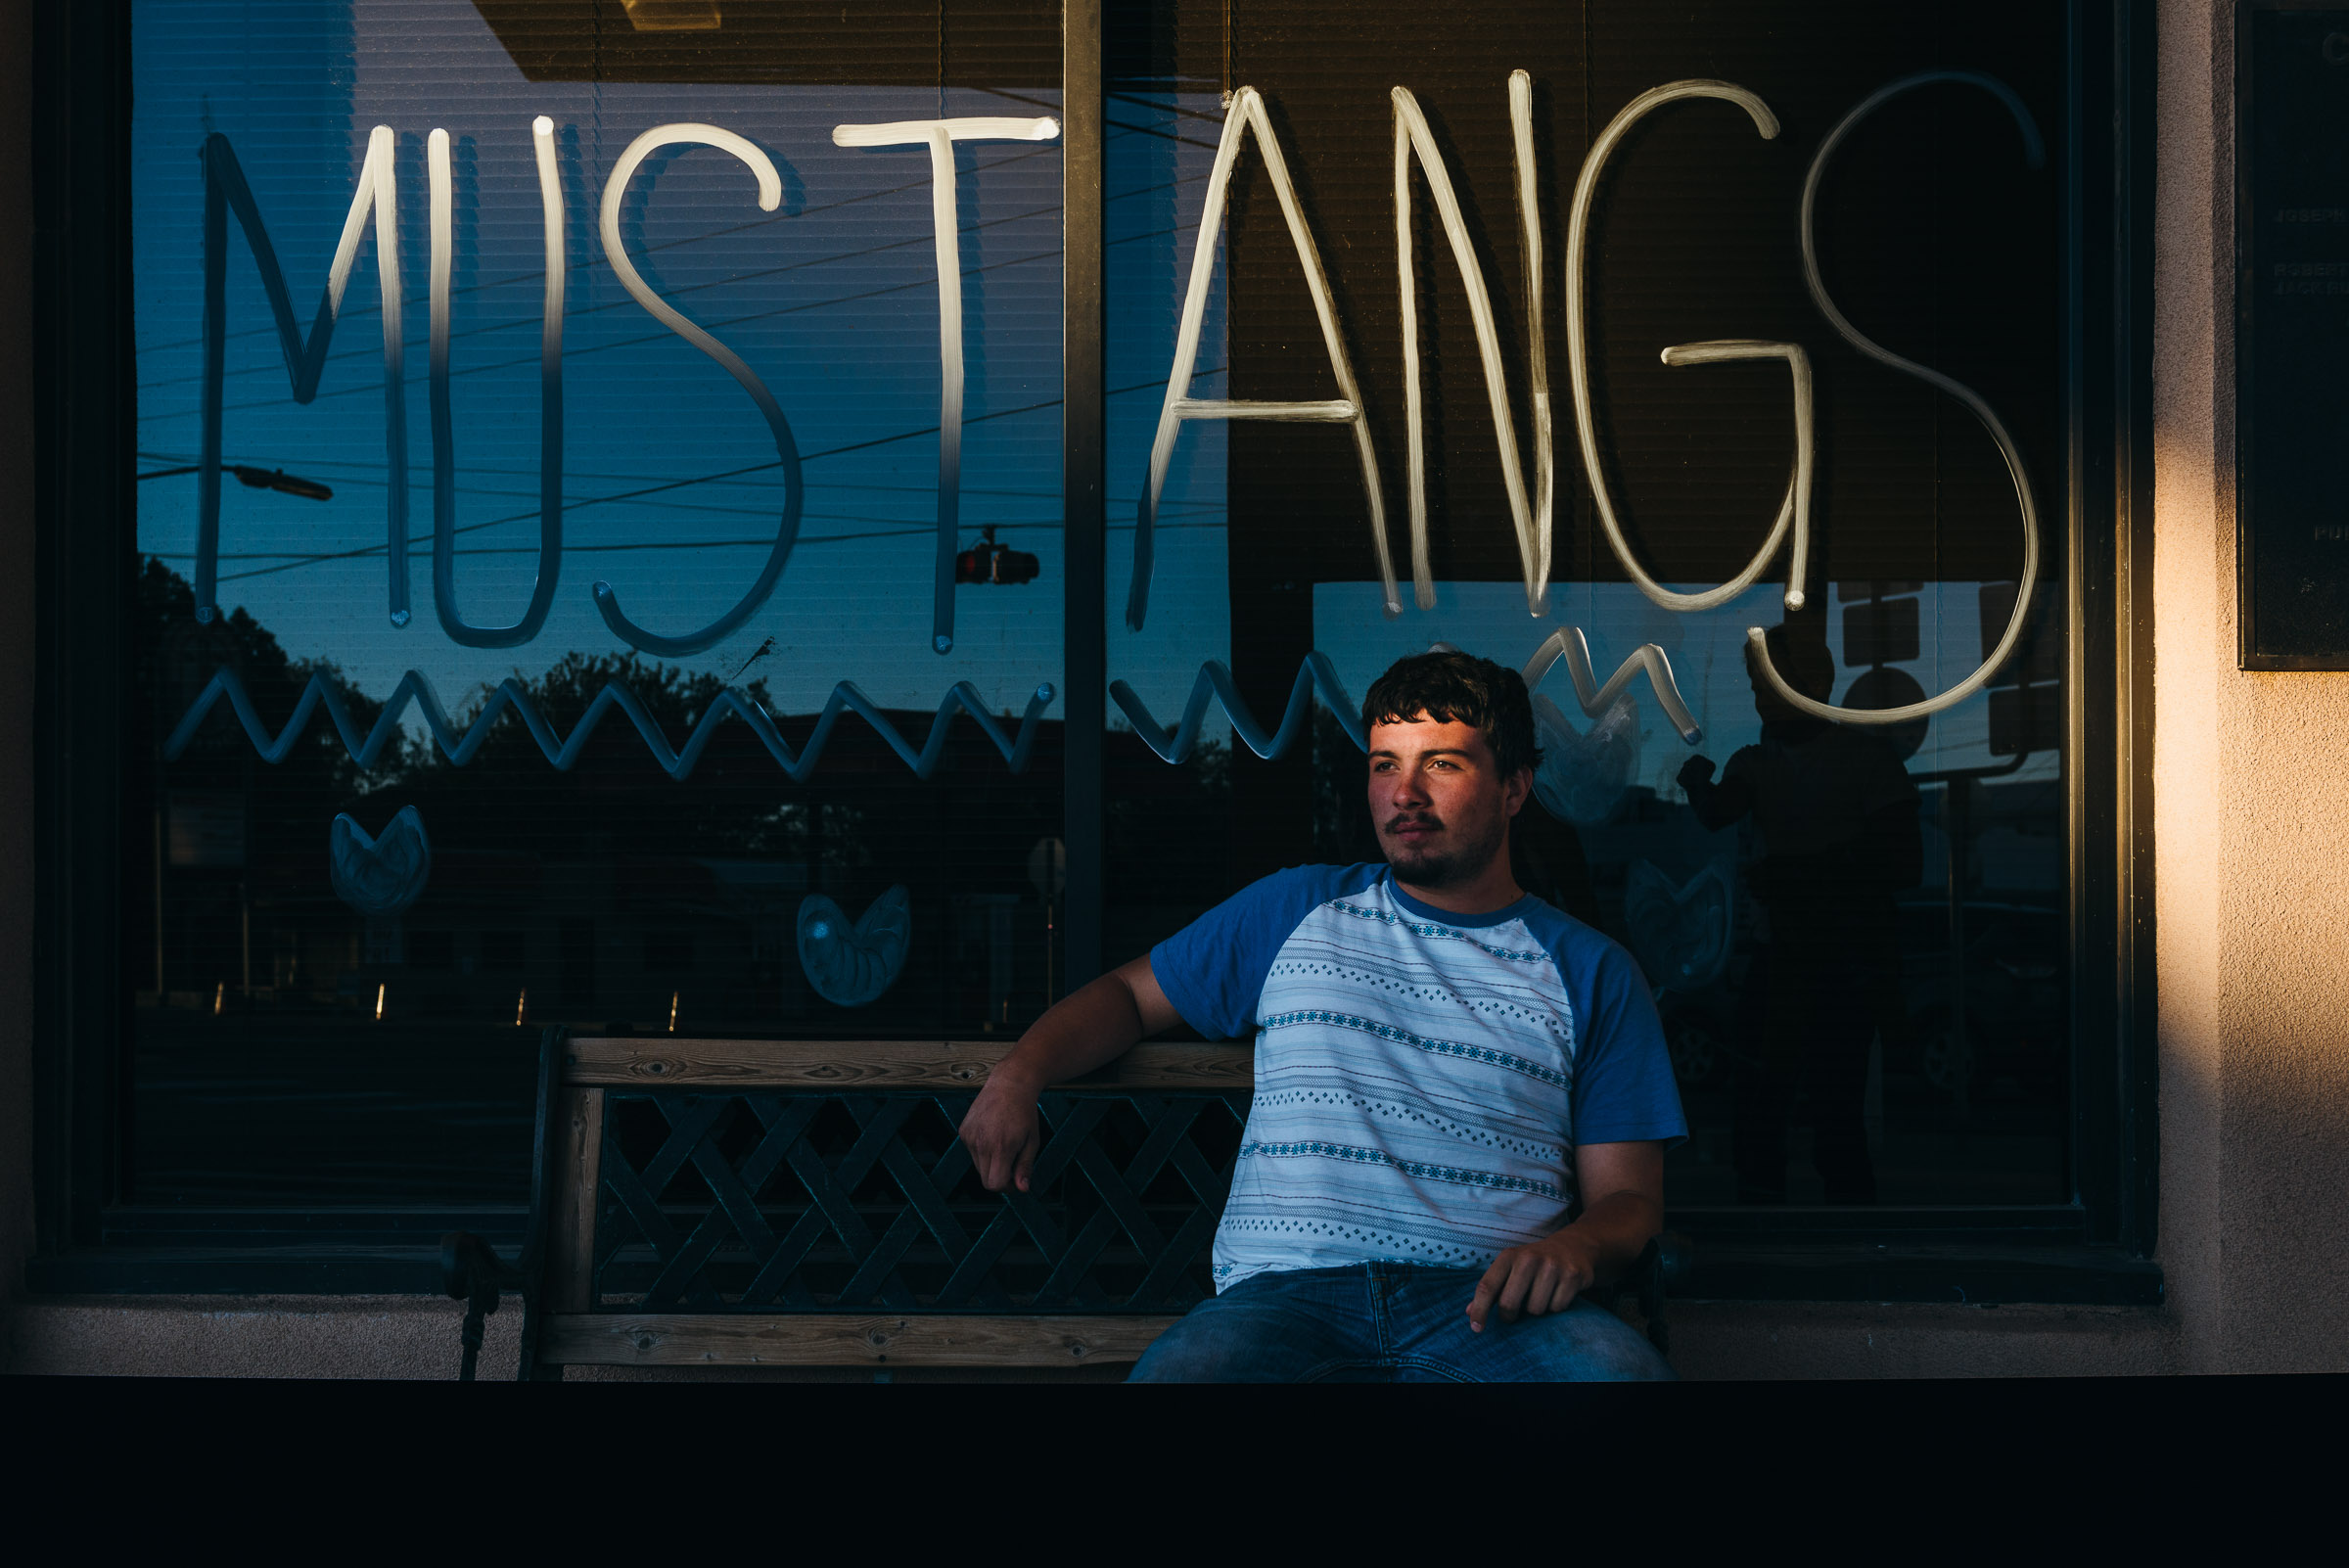 Photojournalism portrait of a young man - Mustangs School Rally -Marfa-TX-1